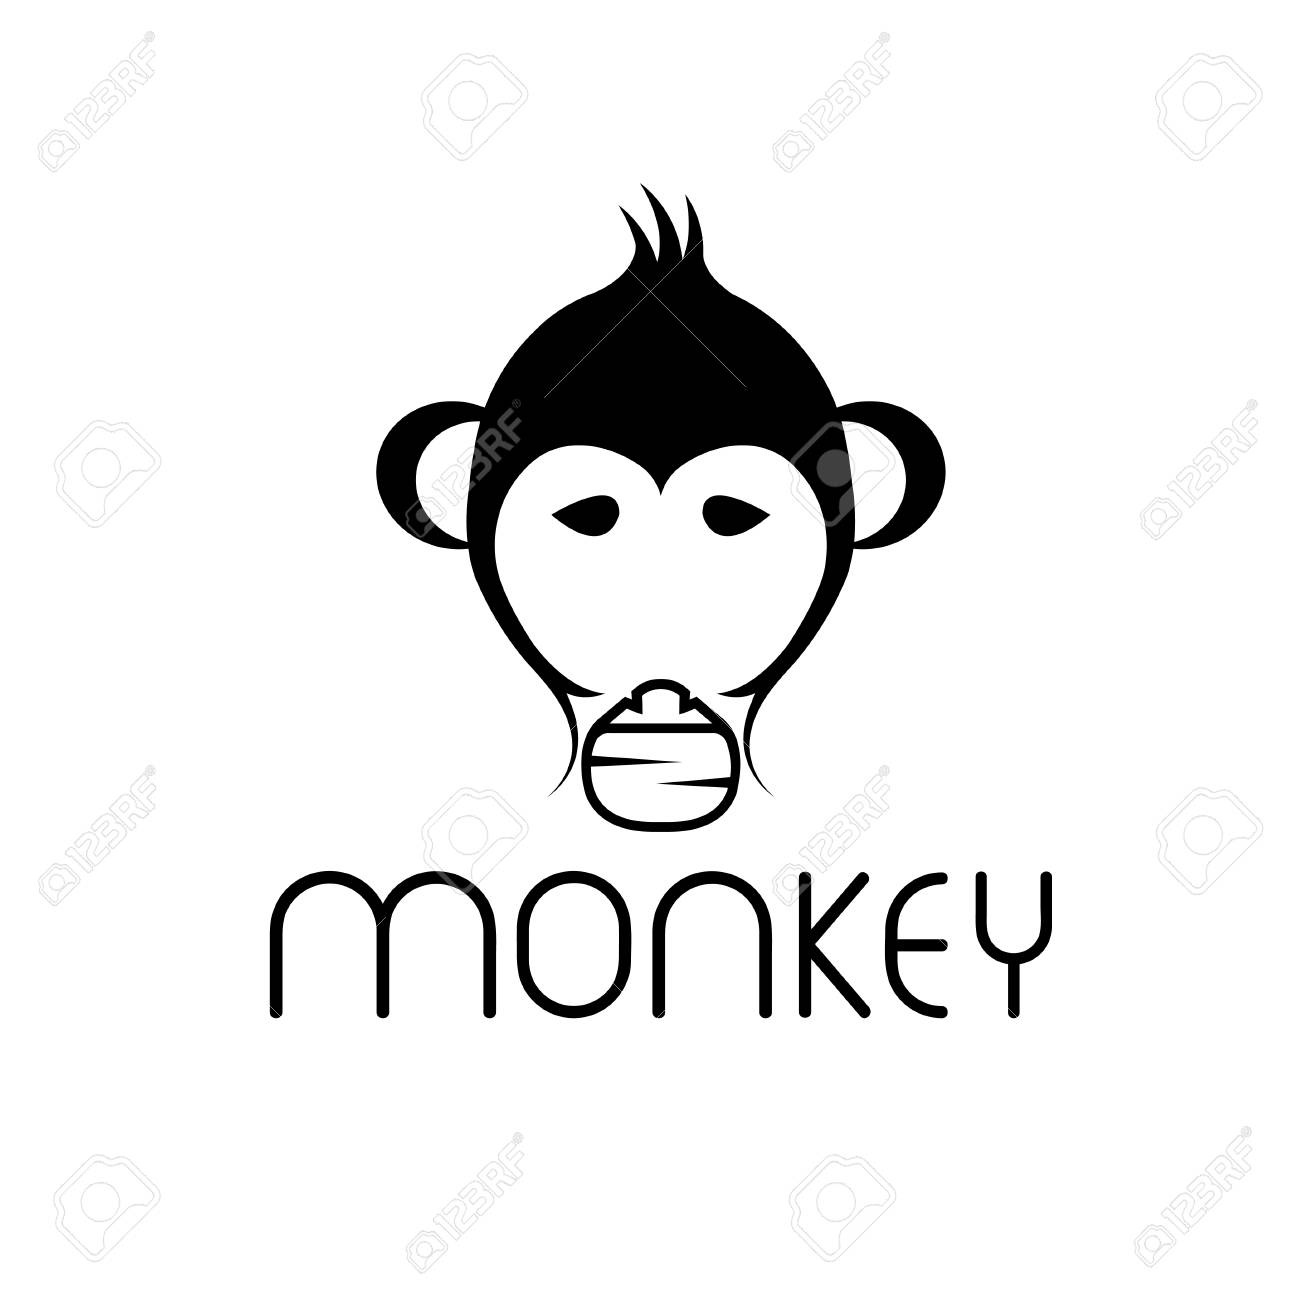 monkey vector design template royalty free cliparts vectors and